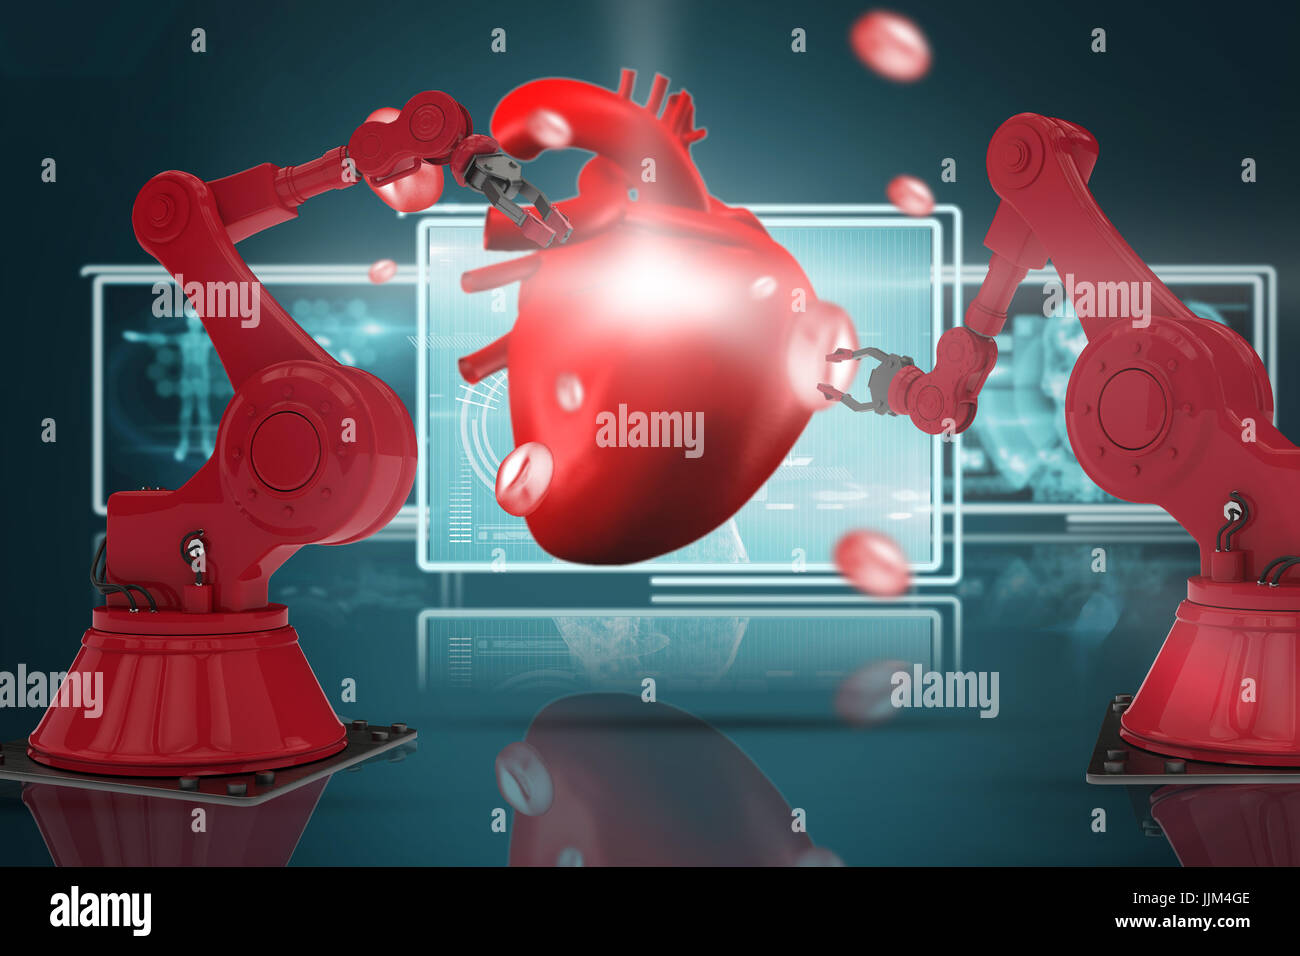 Composite 3d image of red robot arm with claw - Stock Image